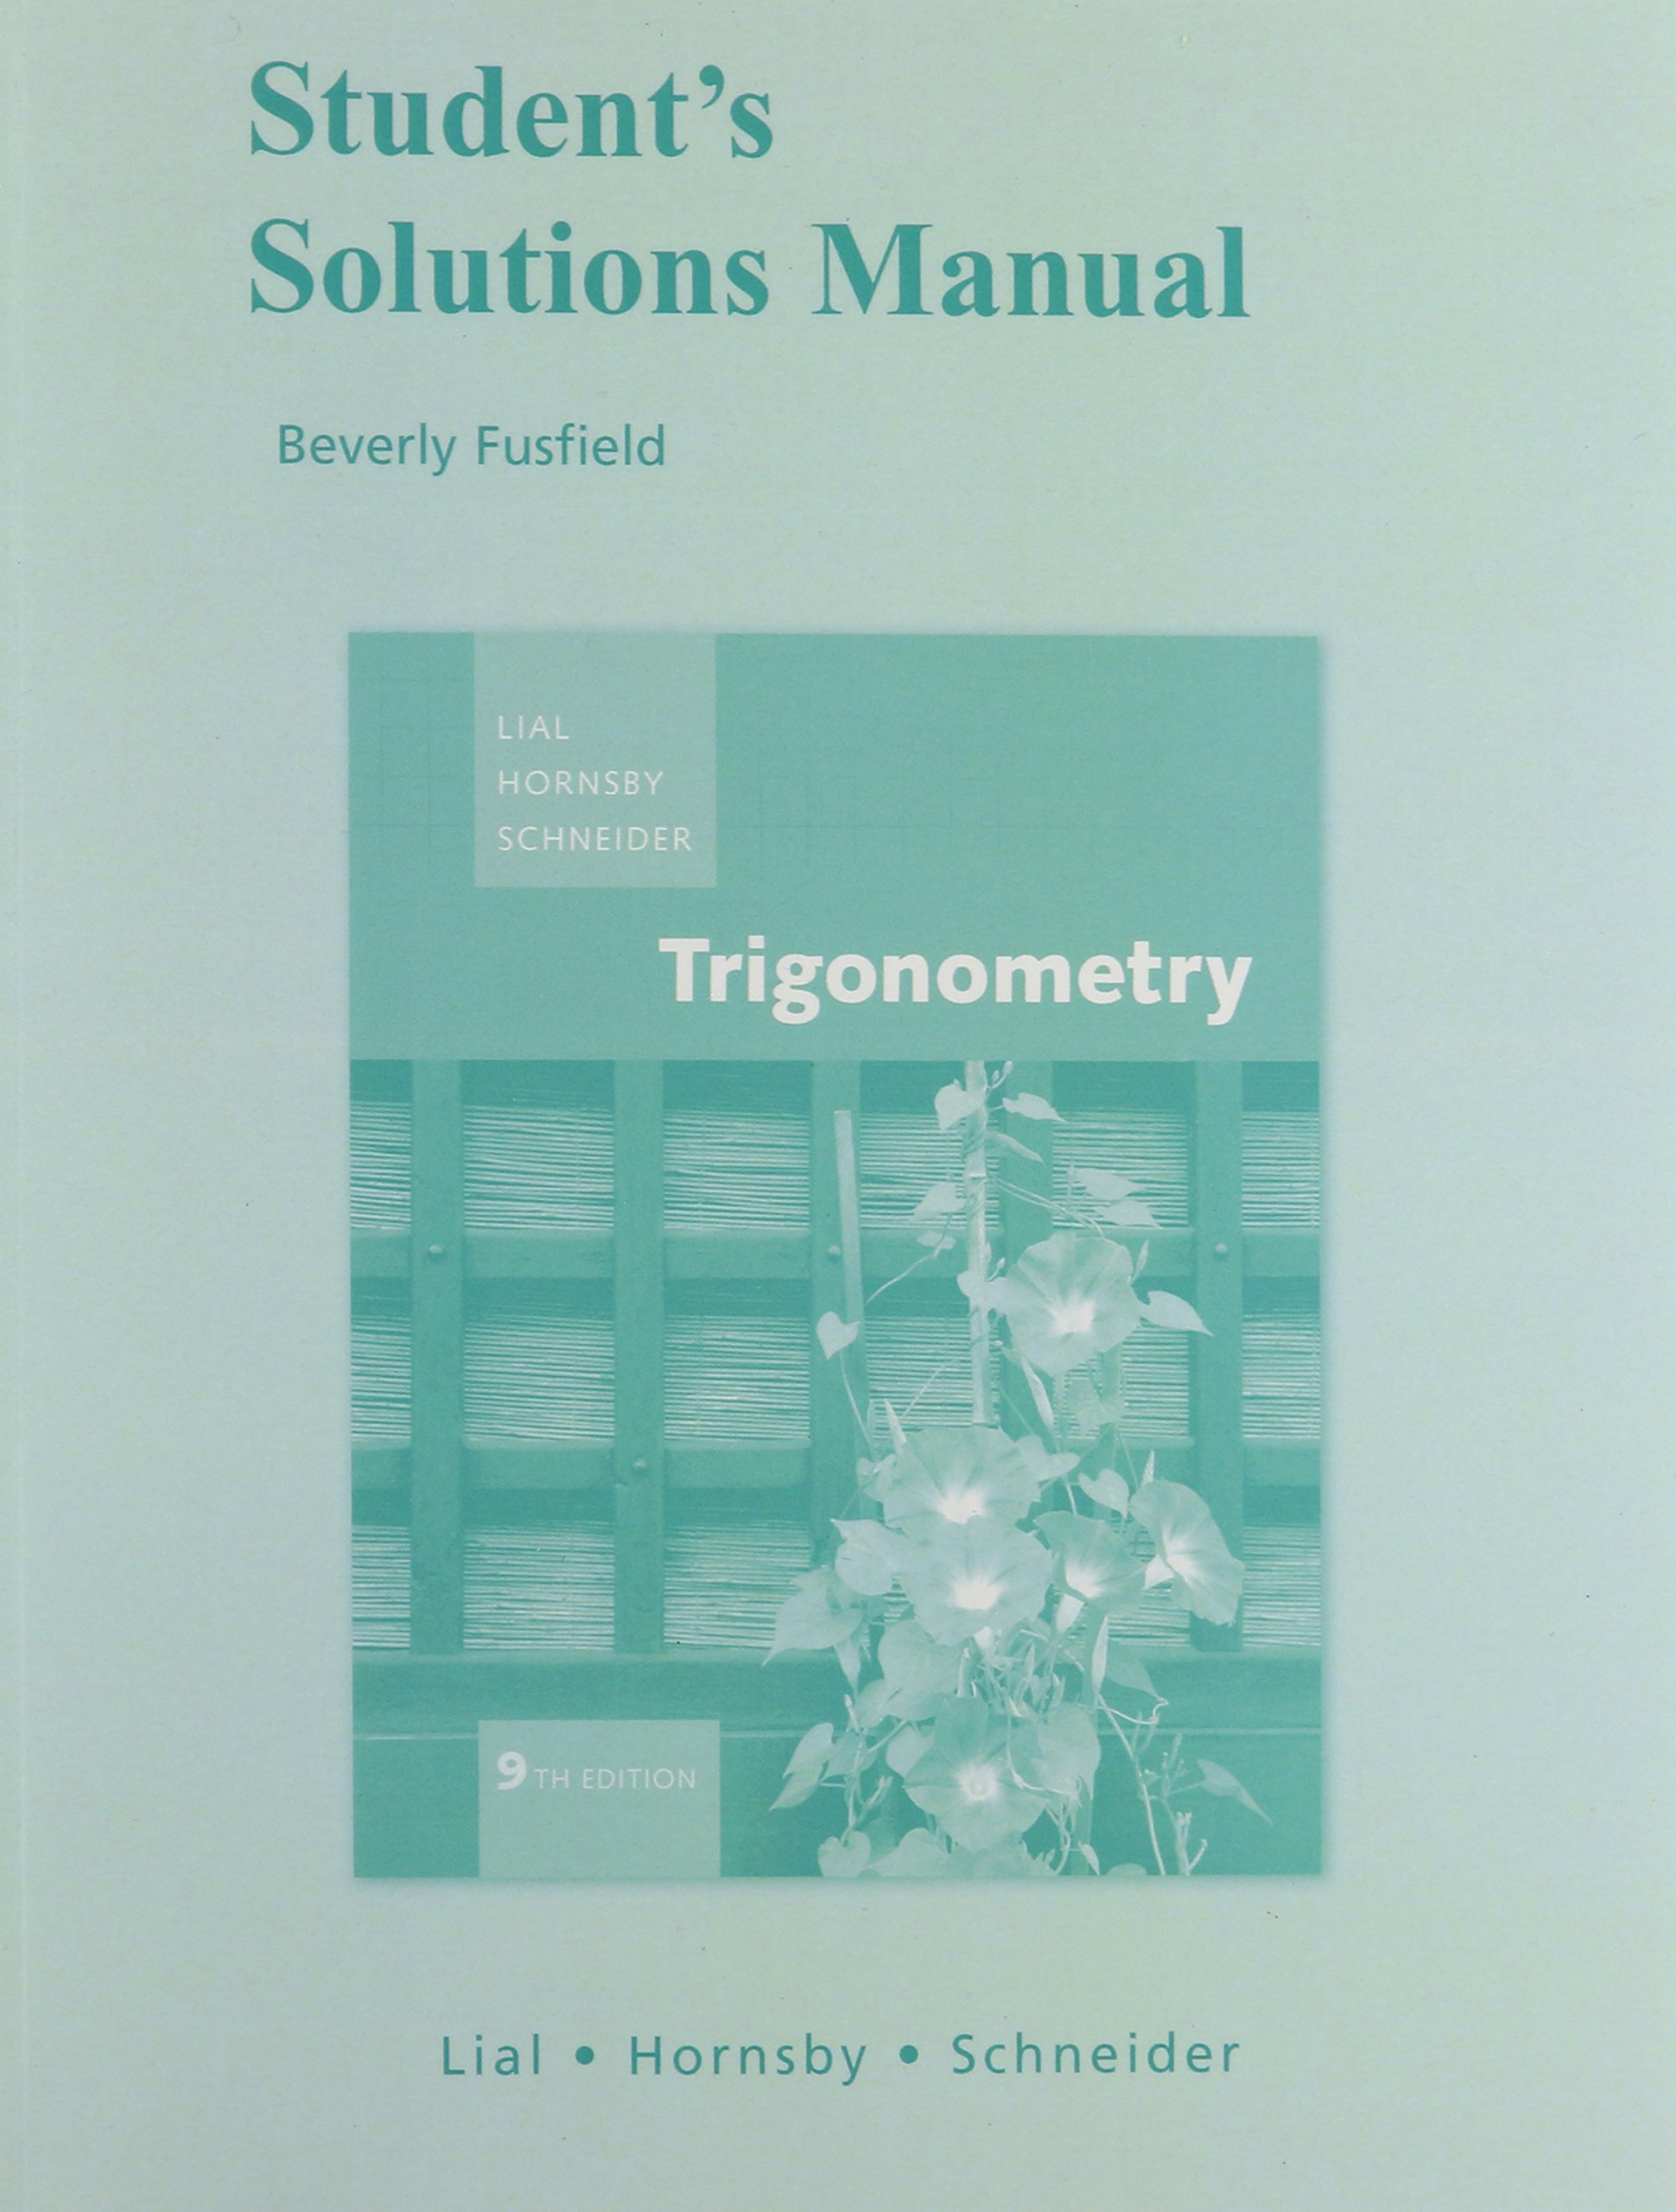 Student Solutions Manual for Trigonometry: Margaret L. Lial, John Hornsby,  David I. Schneider: 9780321530400: Books - Amazon.ca